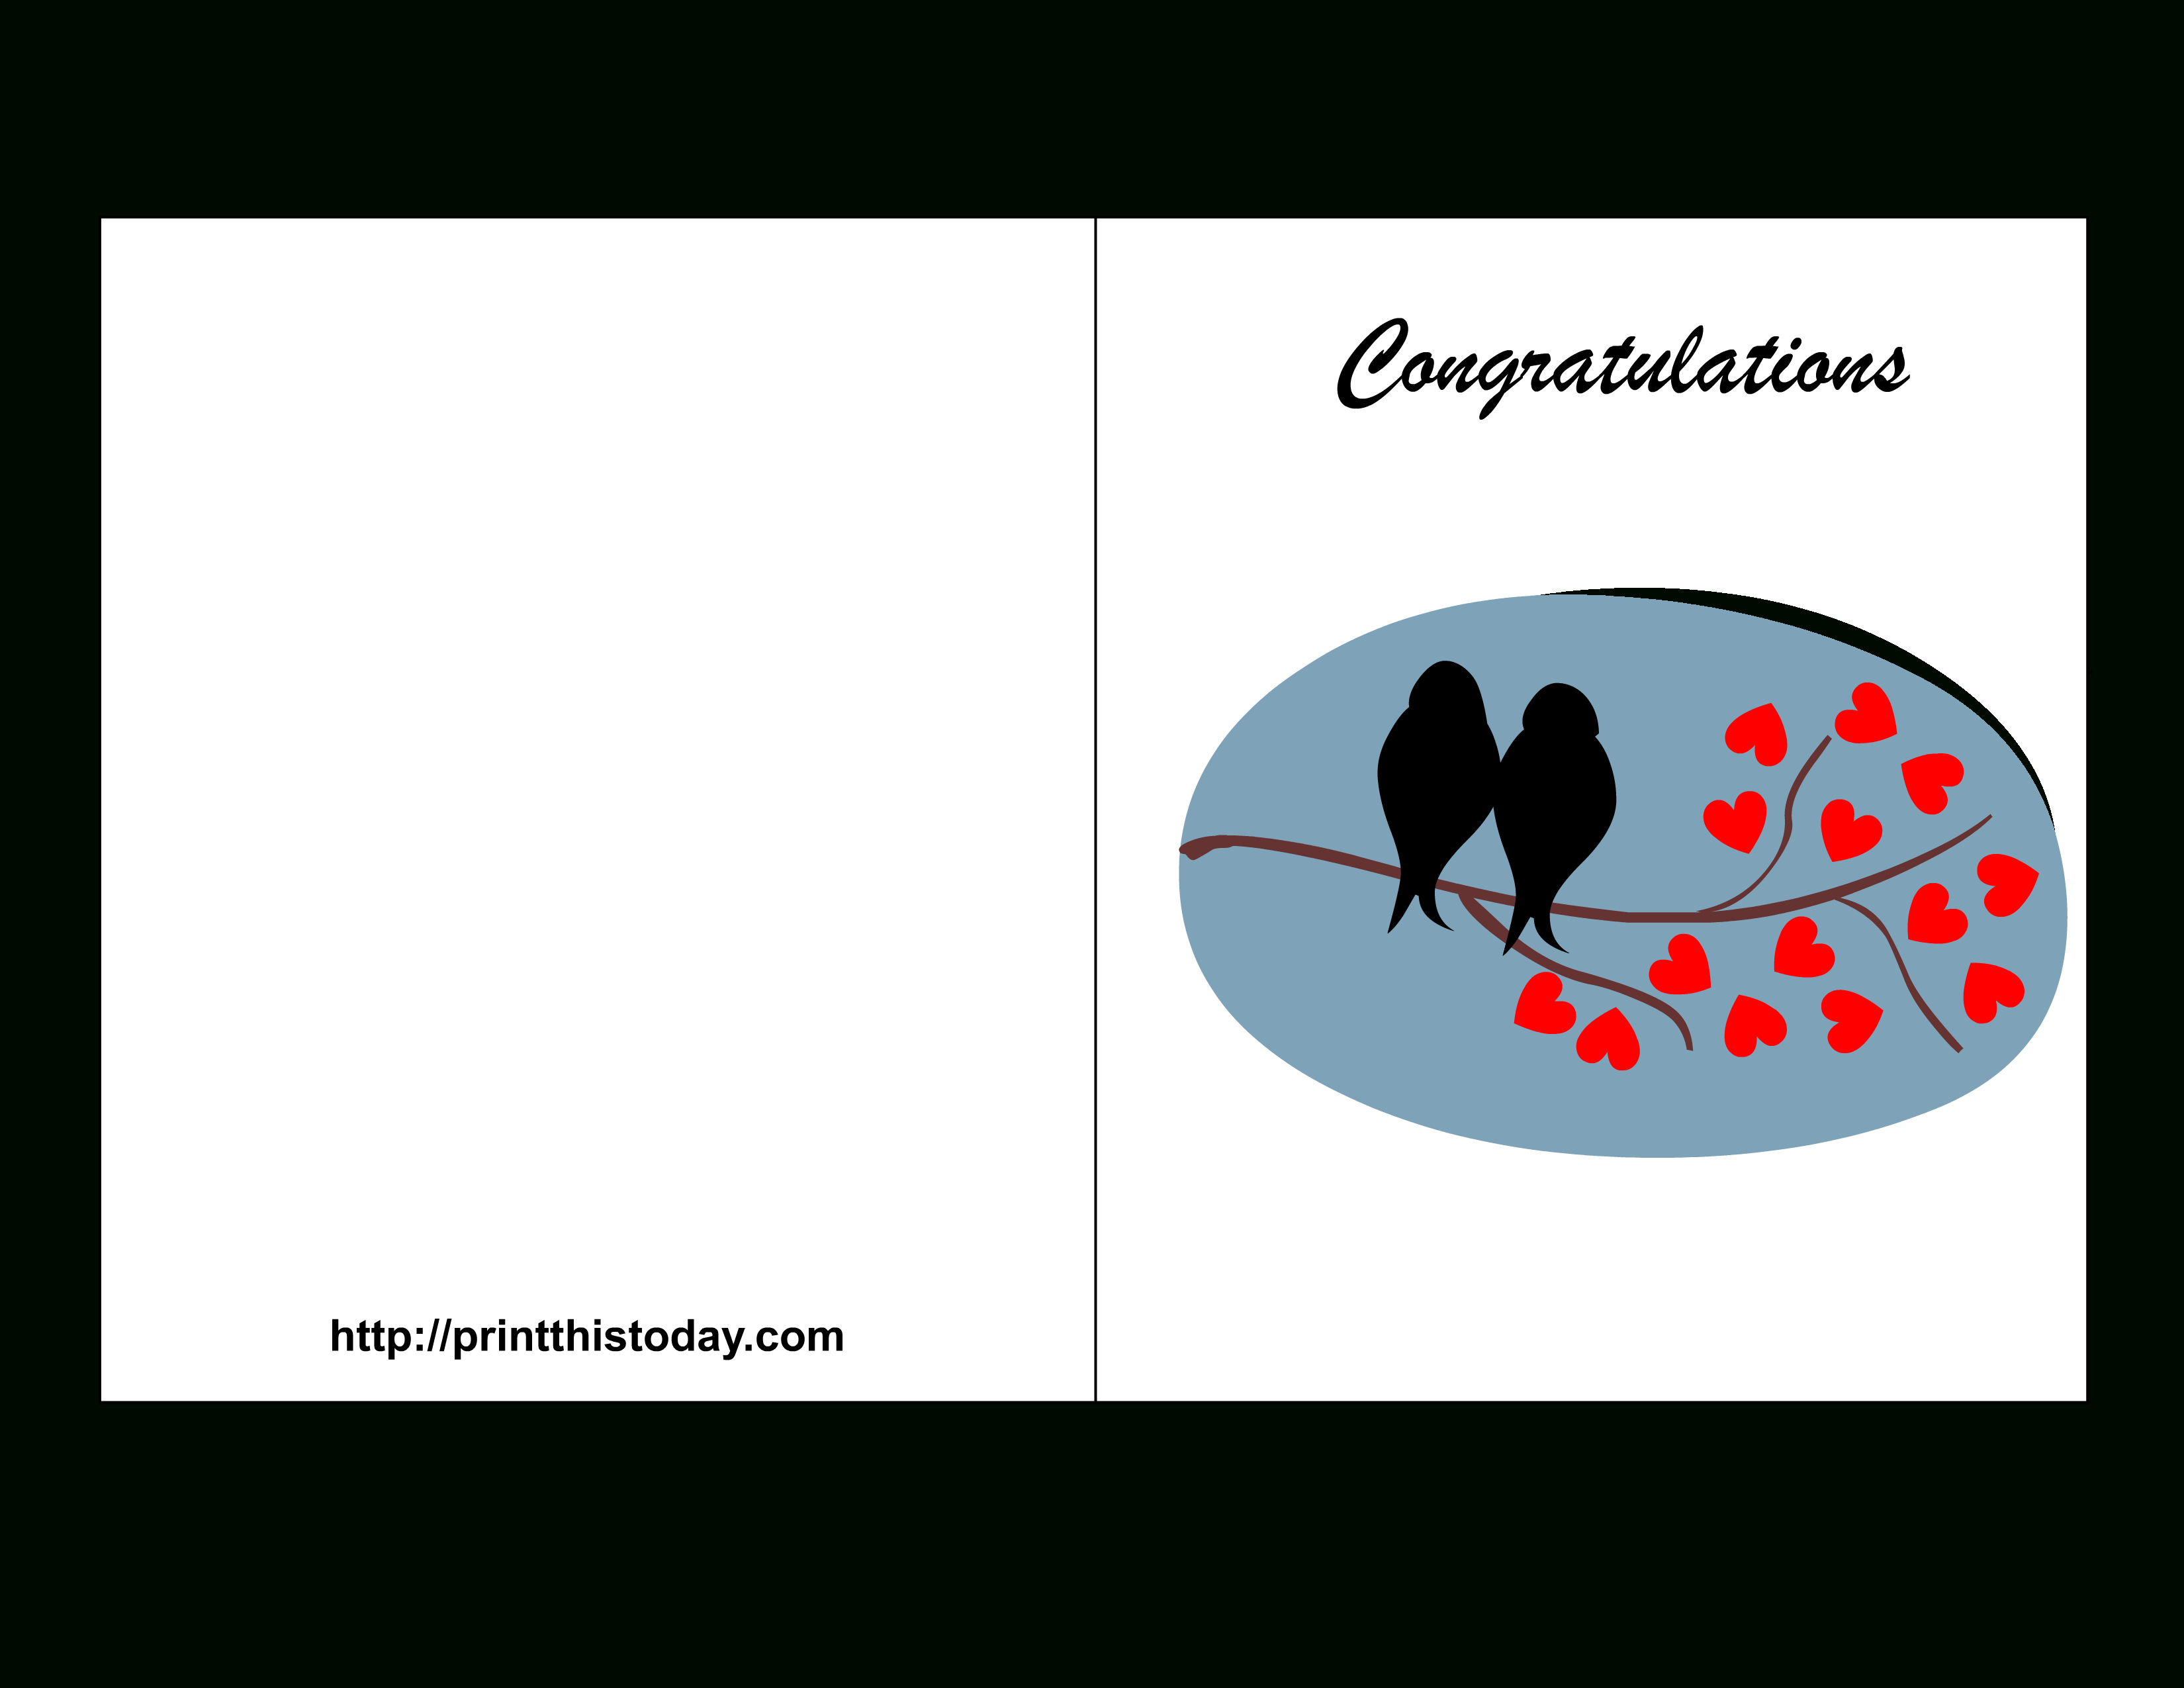 Congratulation Cards To Print - Demir.iso-Consulting.co - Free Printable Congratulations Cards